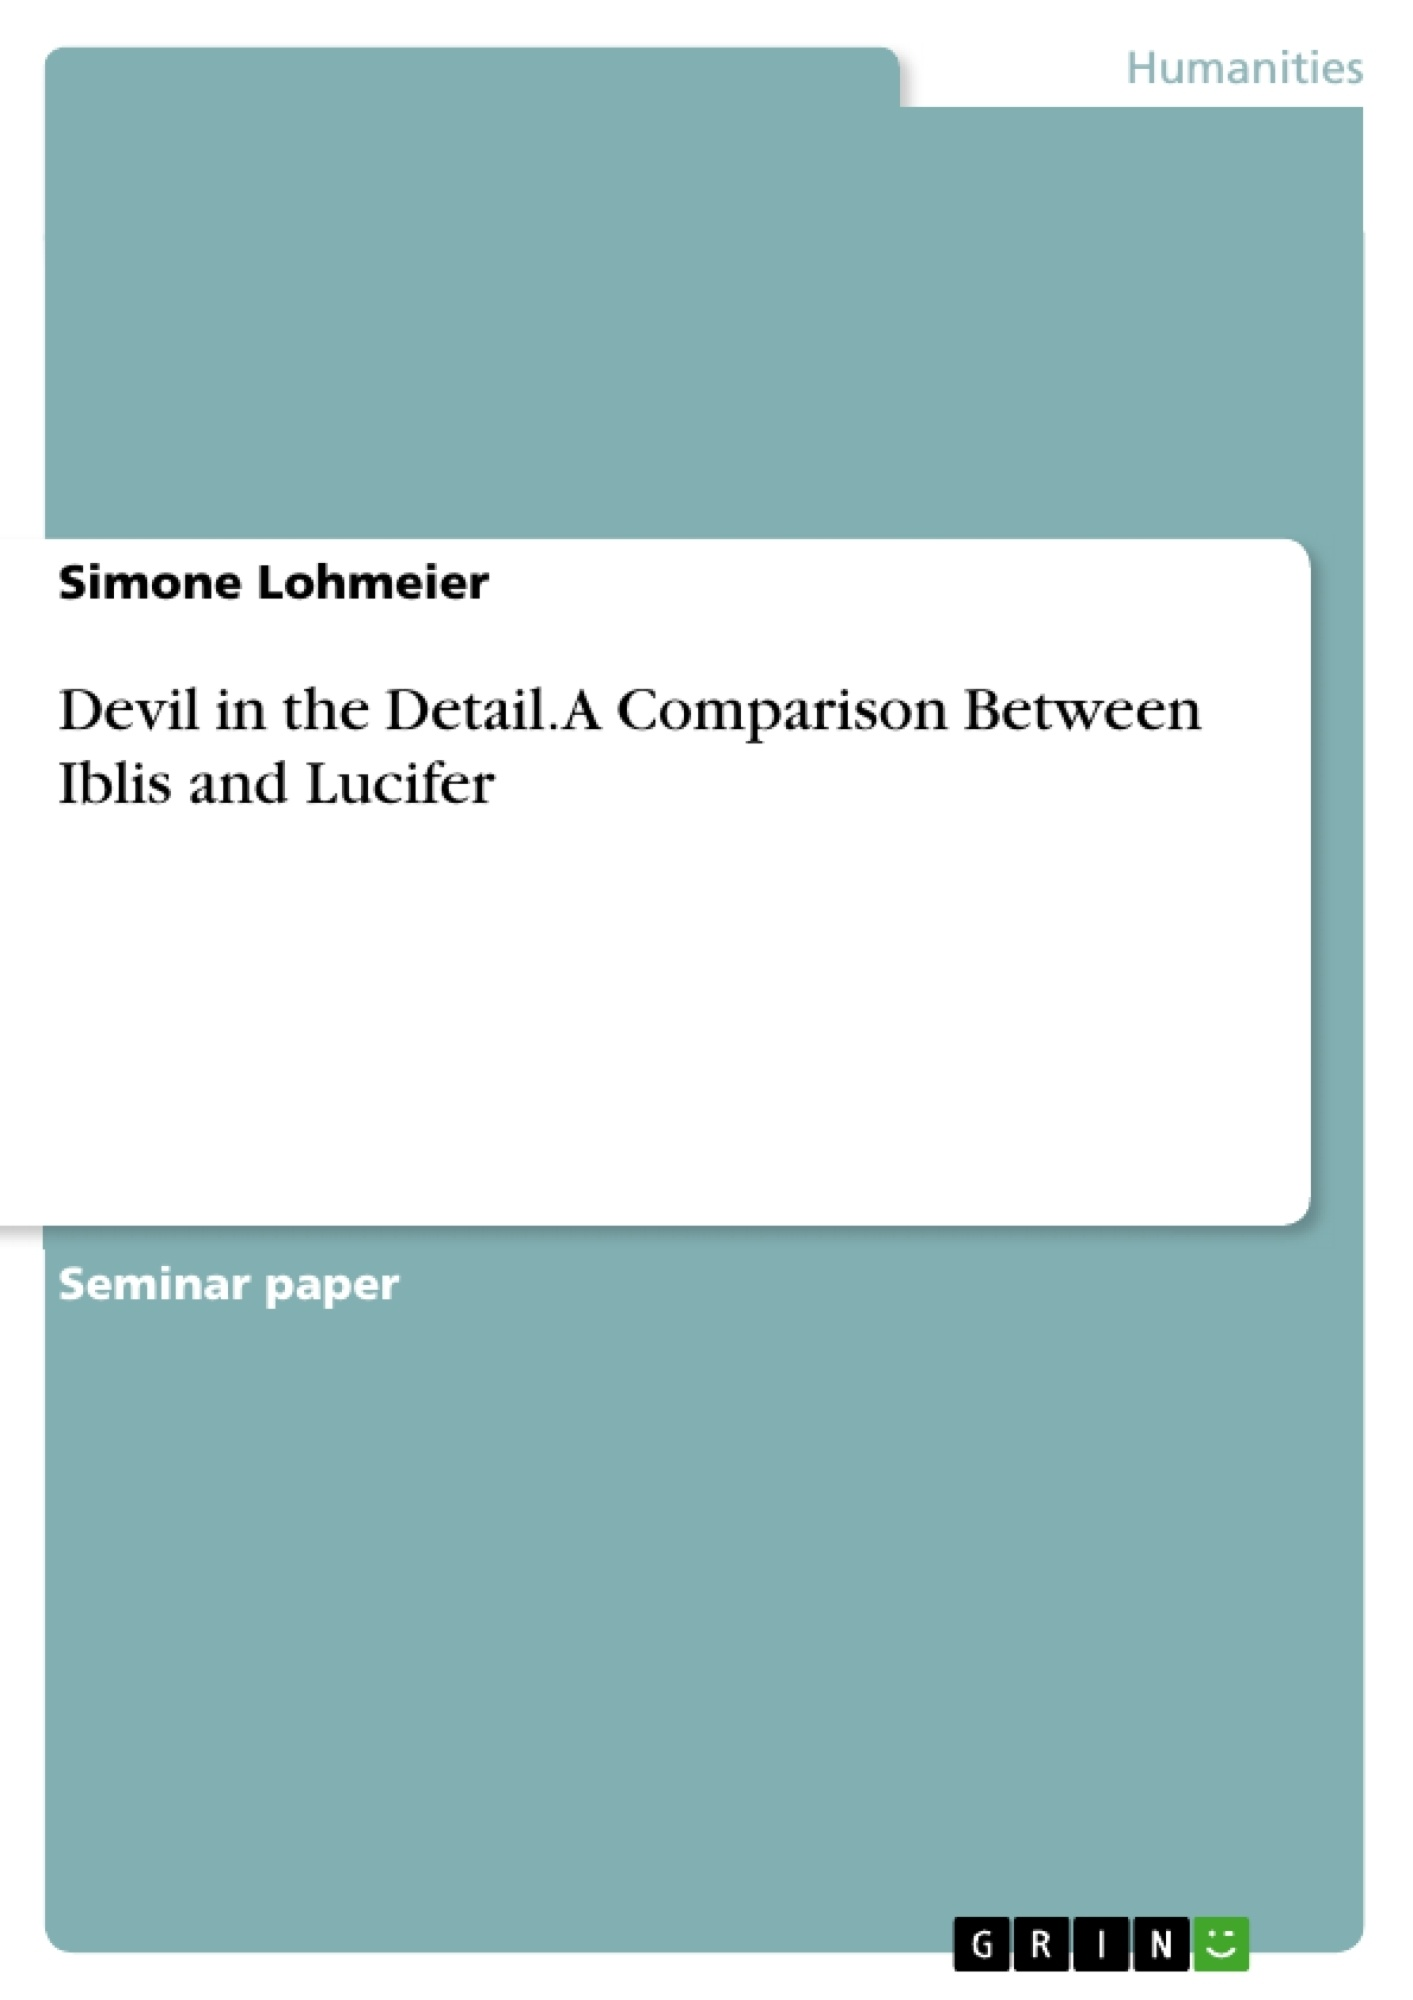 Title: Devil in the Detail. A Comparison Between Iblis and Lucifer